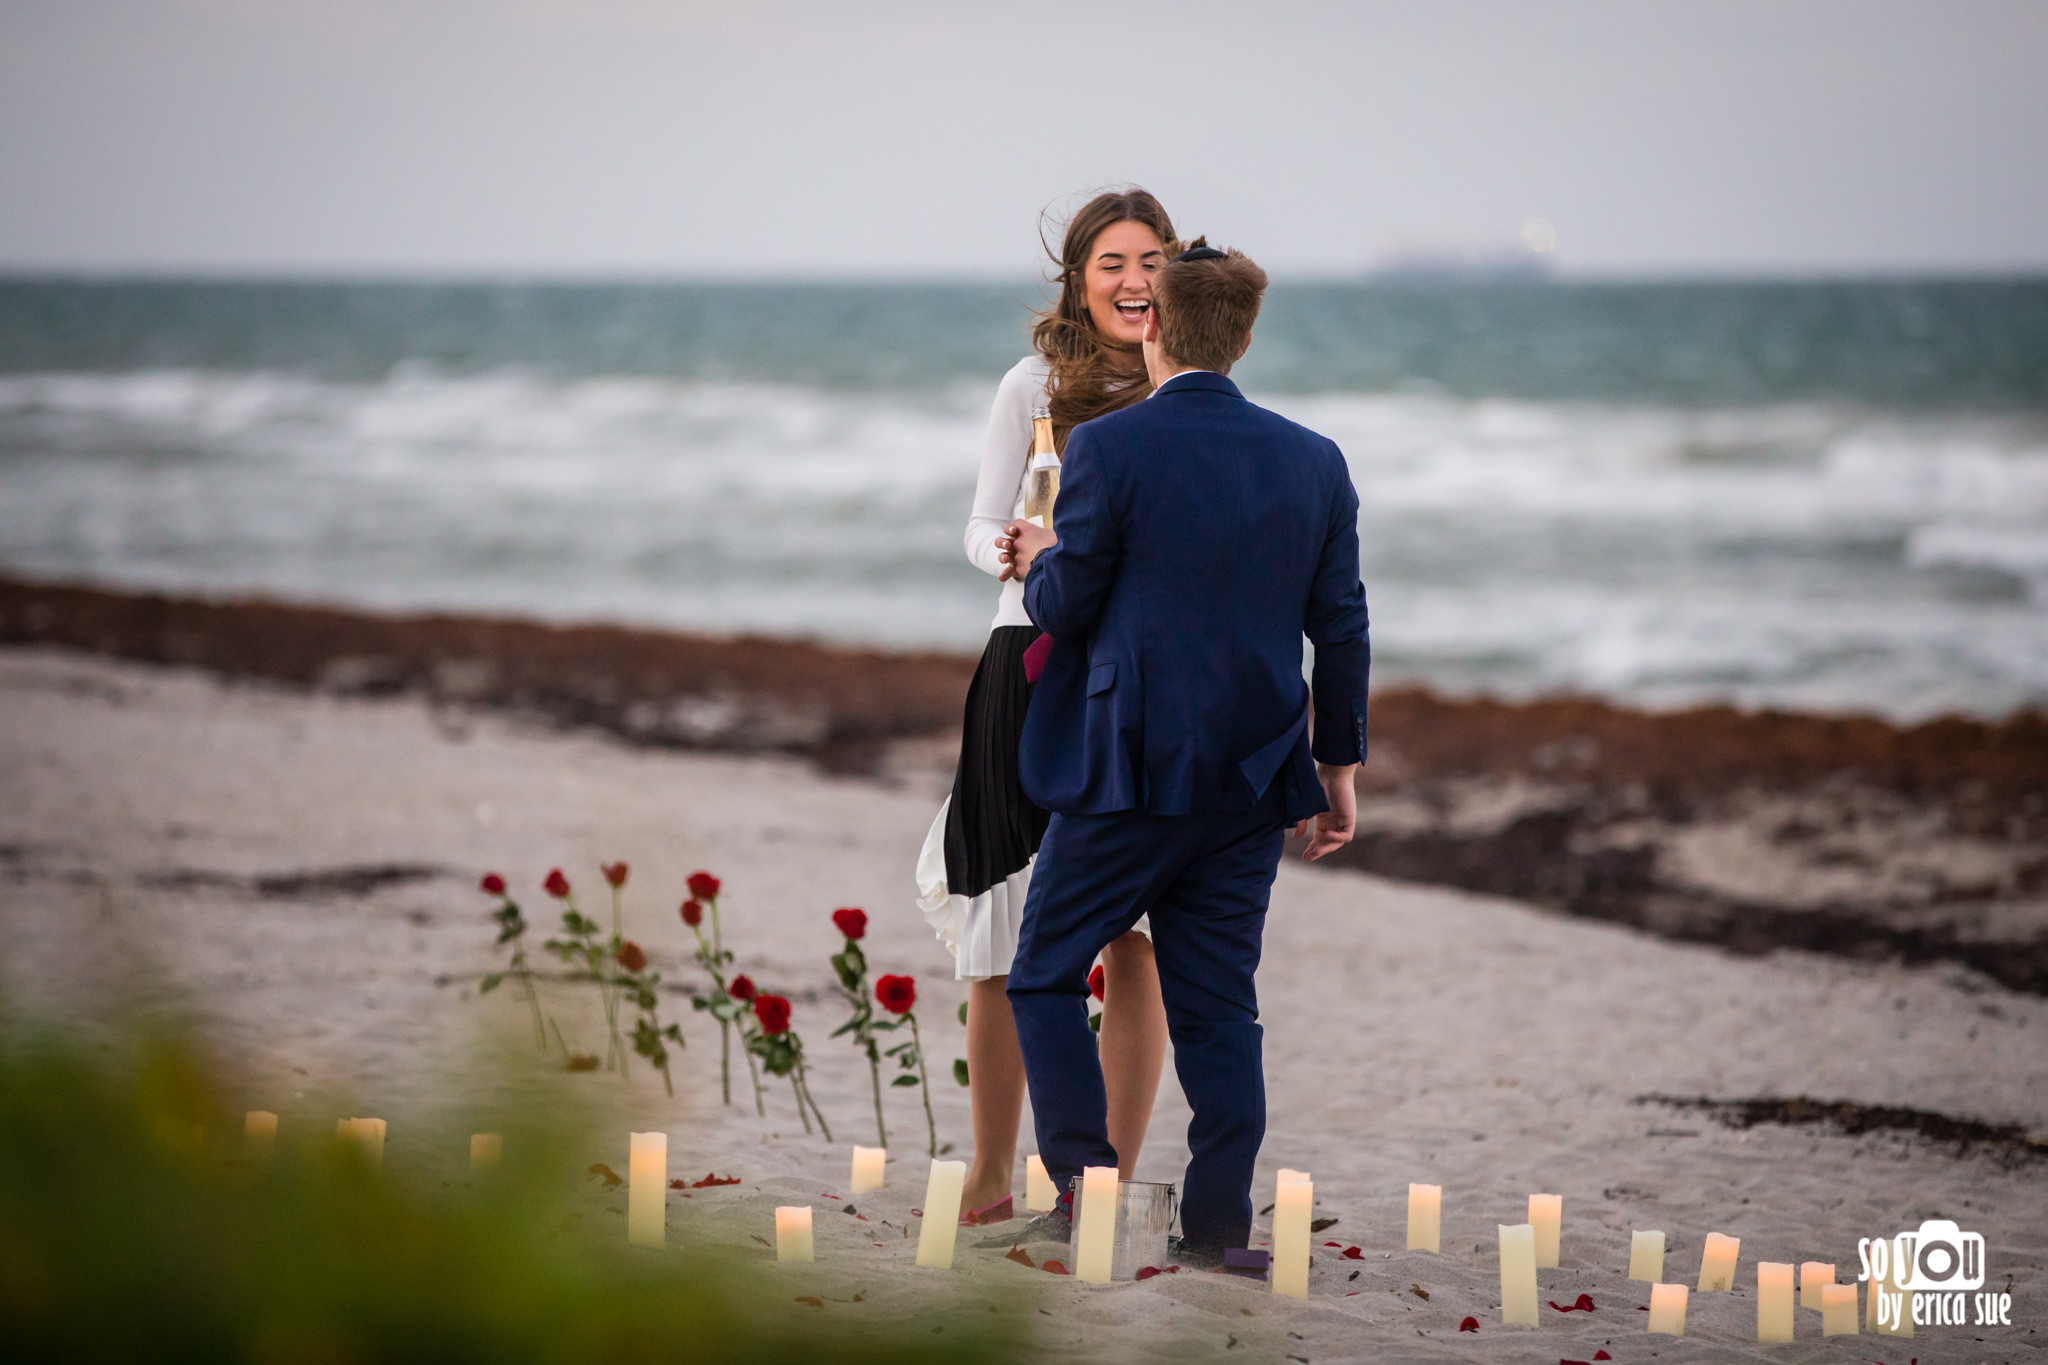 so-you-by-erica-sue-hollywood-fl-photographer-beach-engagement-flowers-candles-4965.jpg